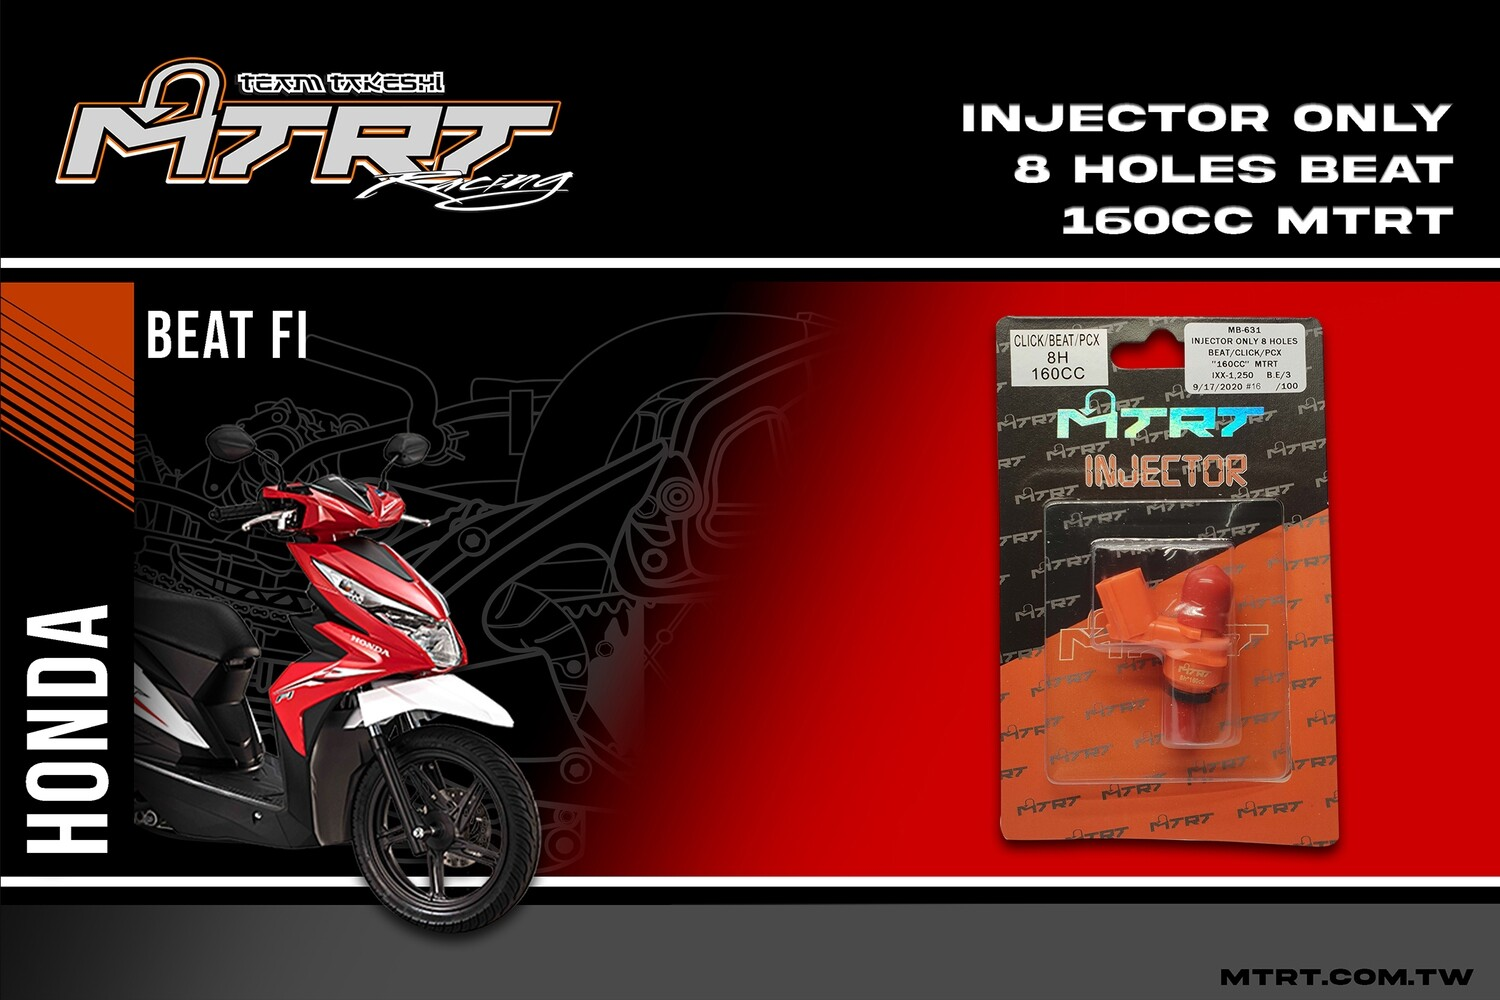 INJECTOR ONLY 8HOLES BEAT CLICK PCX 160CC MTRT